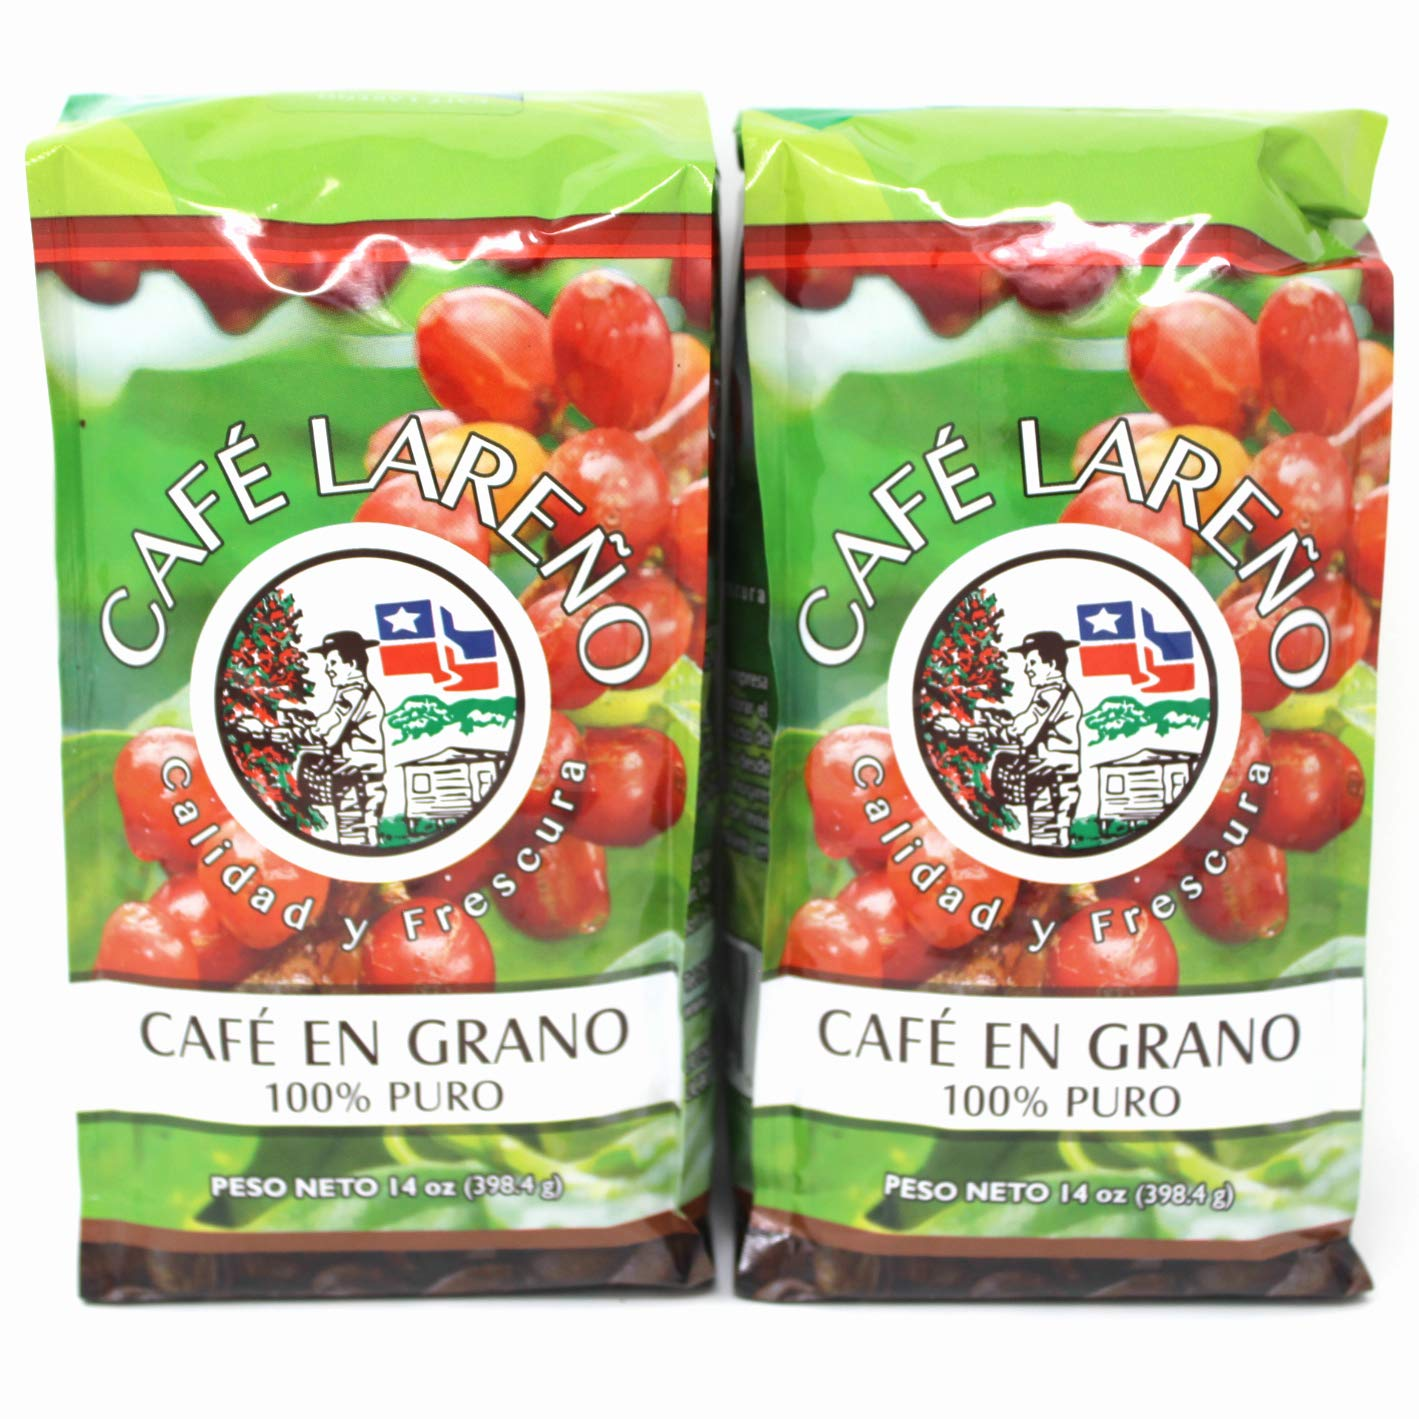 Cafe Lareno Roasted Coffee Beans 14 ounces pack 2 Japan's largest assortment - Phoenix Mall